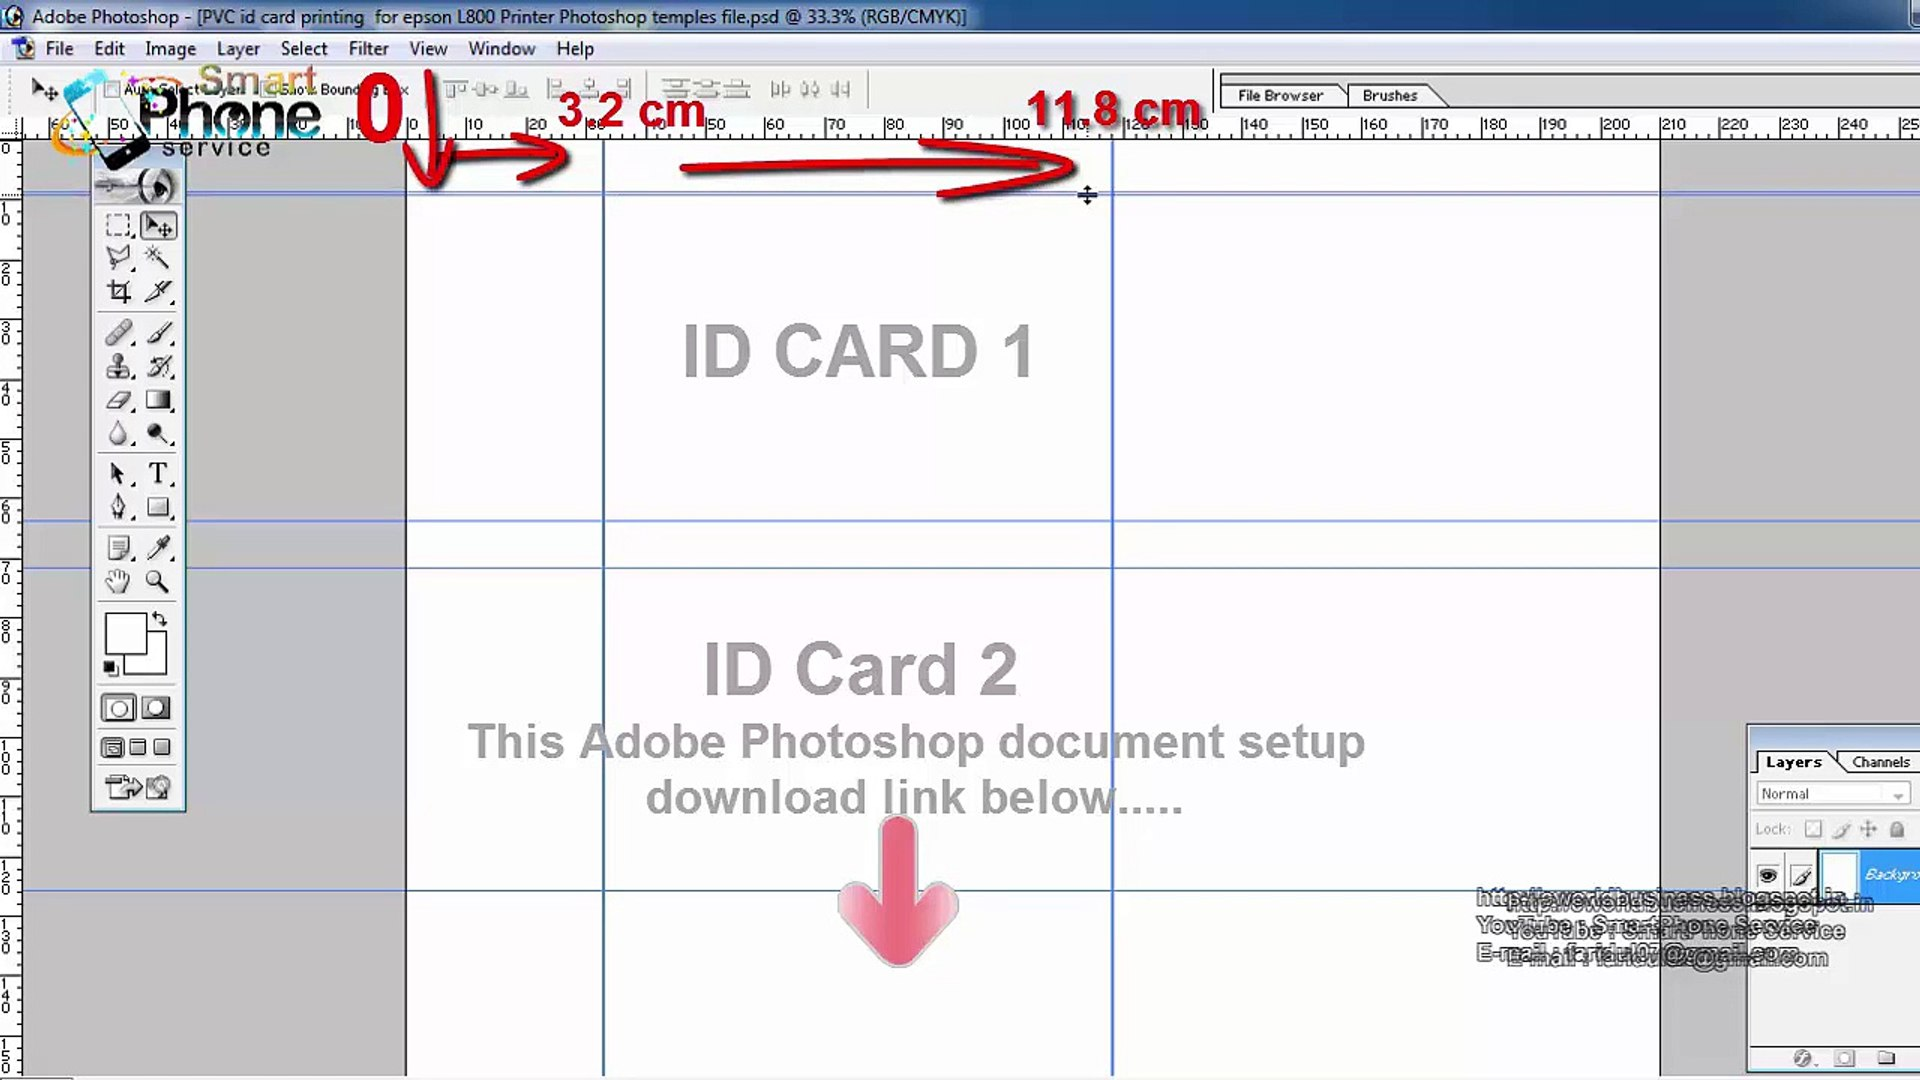 Pvc Id Card Printing Page Layout Template Forasd Epson L800 L805 L810 L850 Video Dailymotion